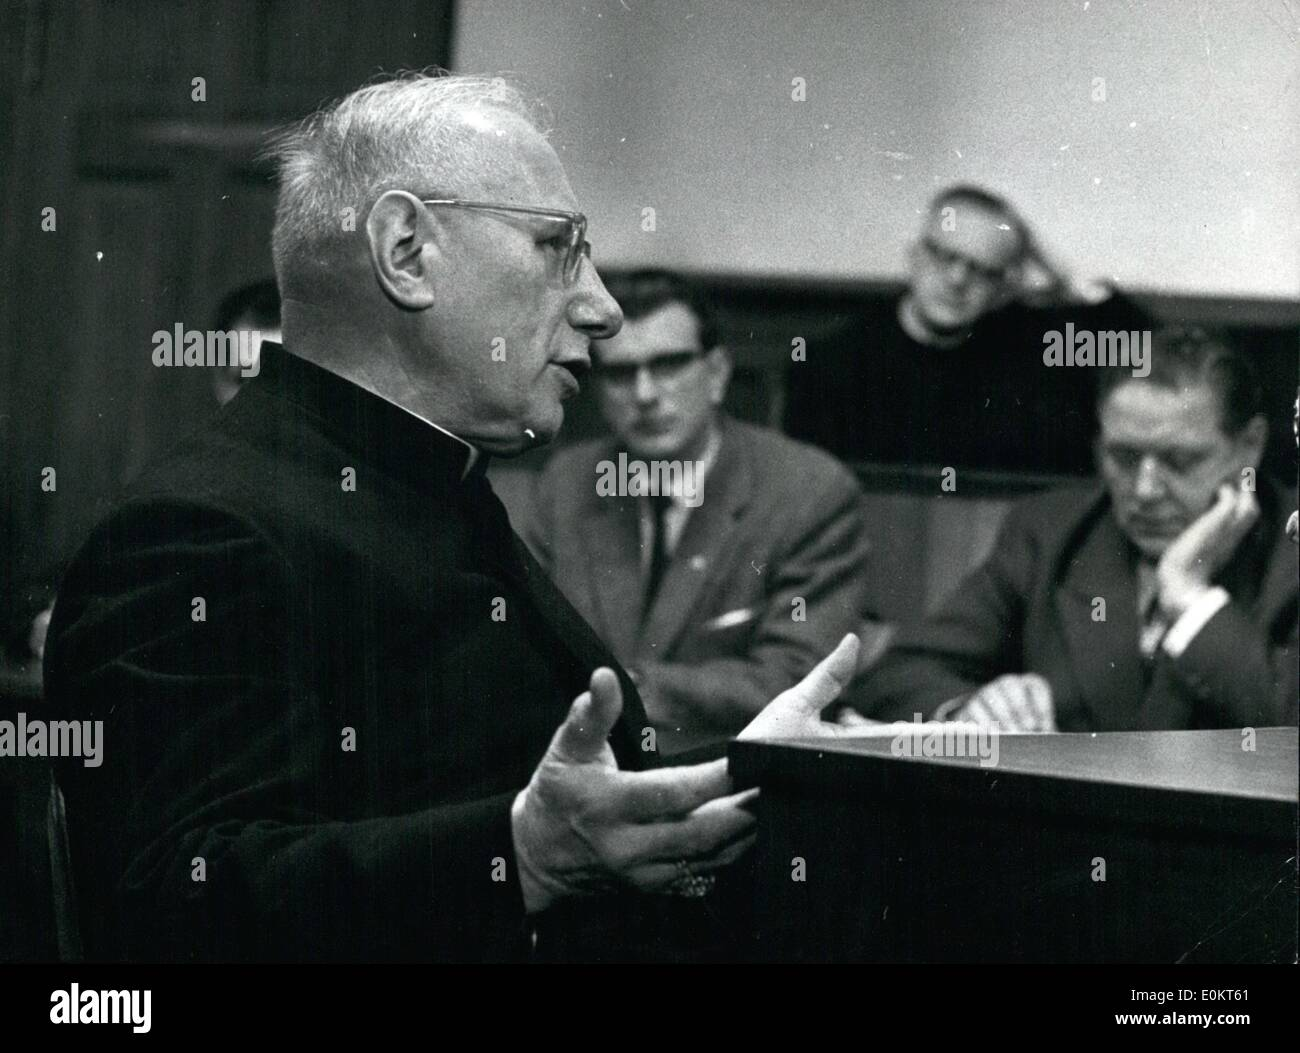 Dec. 12, 1948 - Munich Suffragan witness at the KZ-trail - At the process at the resize court in Bonn against Schubert and Sorge on Dec. 29th the Munich Suffragan Dr. Neuhausler appeared as witness. The Bishop was during his custody in the OPS: Suffragan Nouhausler in the witnessbox. - Stock Image